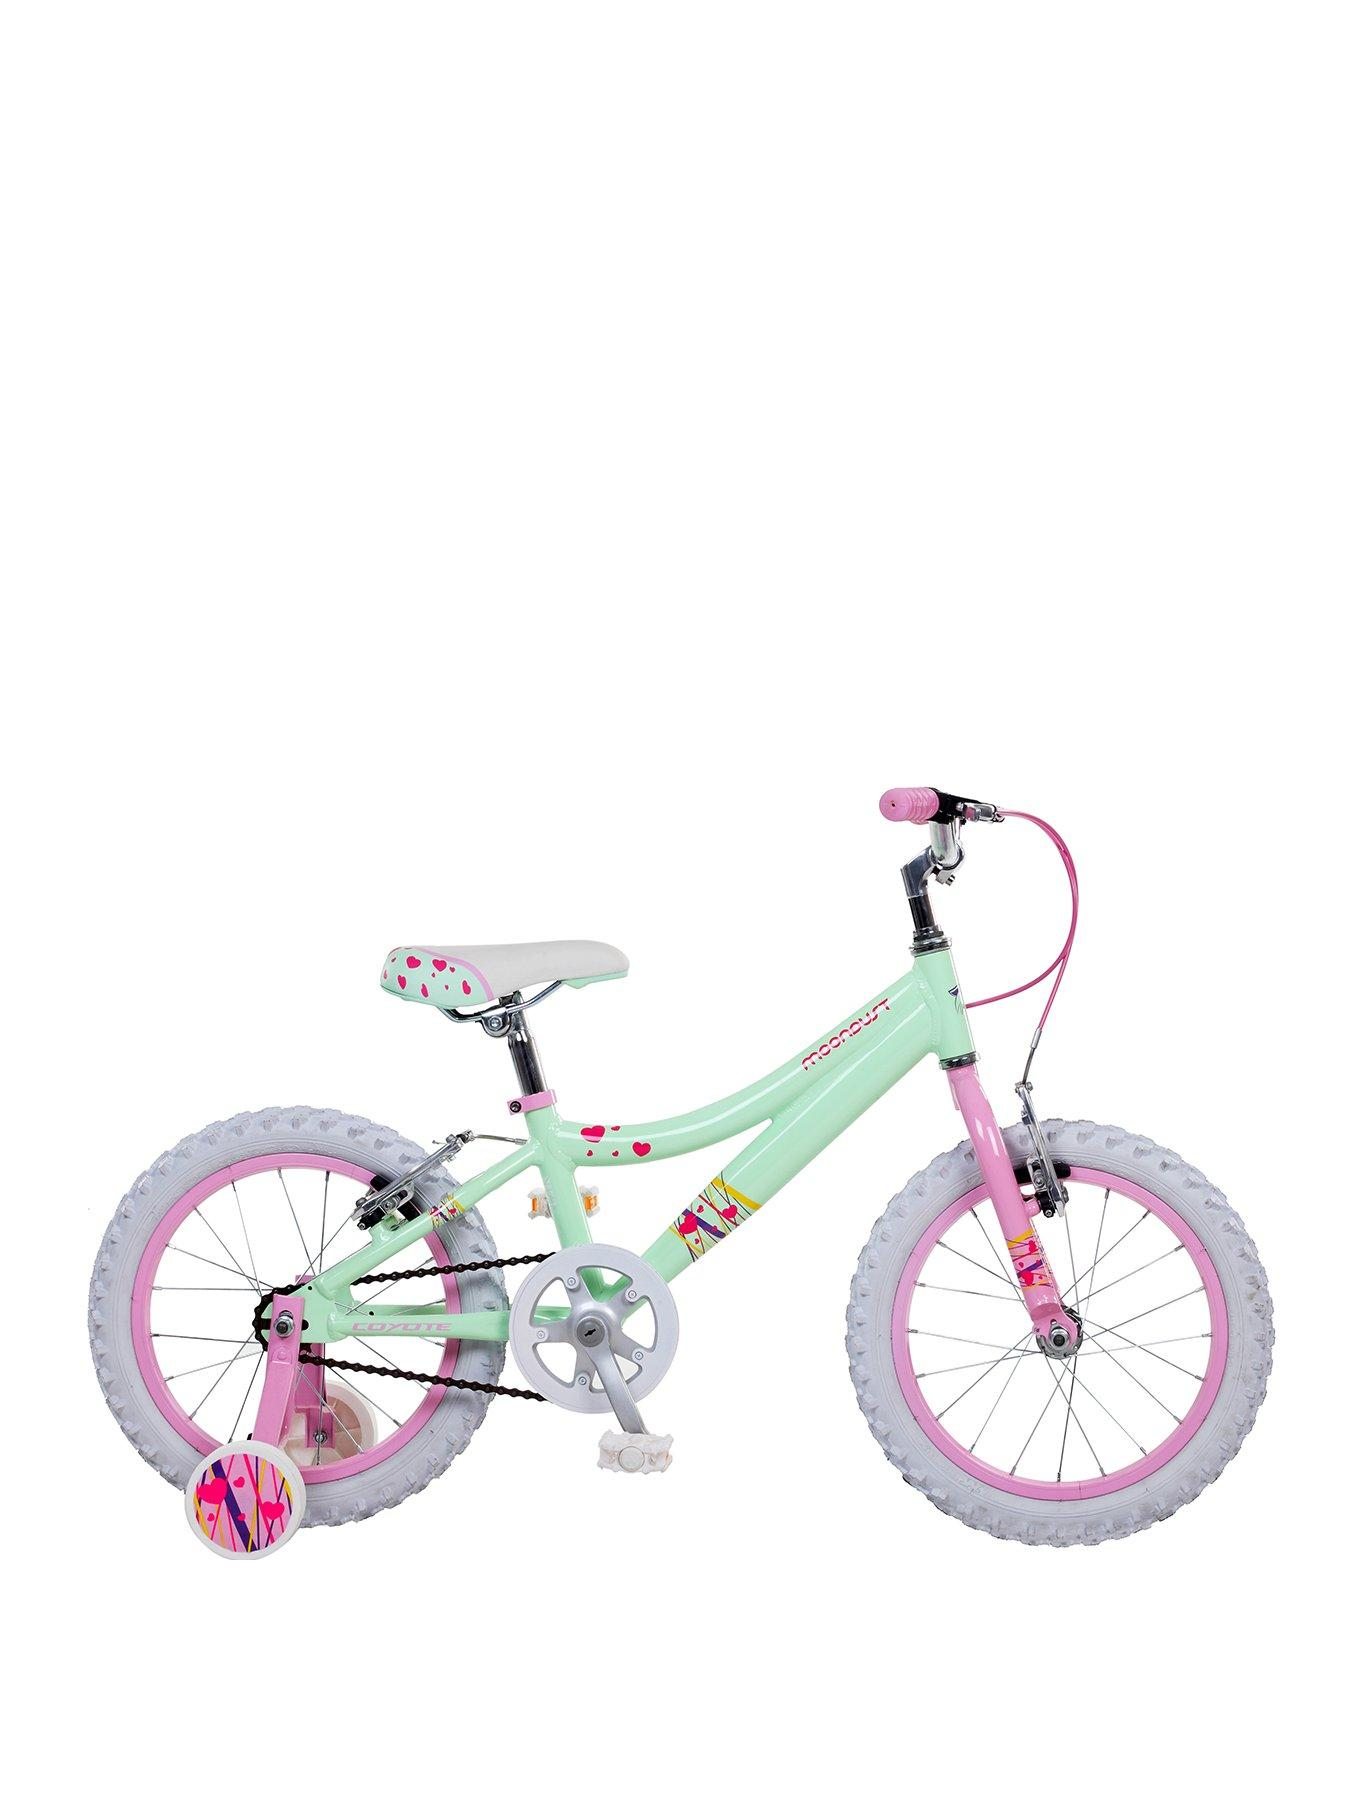 Compare prices for Coyote Moondust Alloy Girls Bike 16 inch Wheel